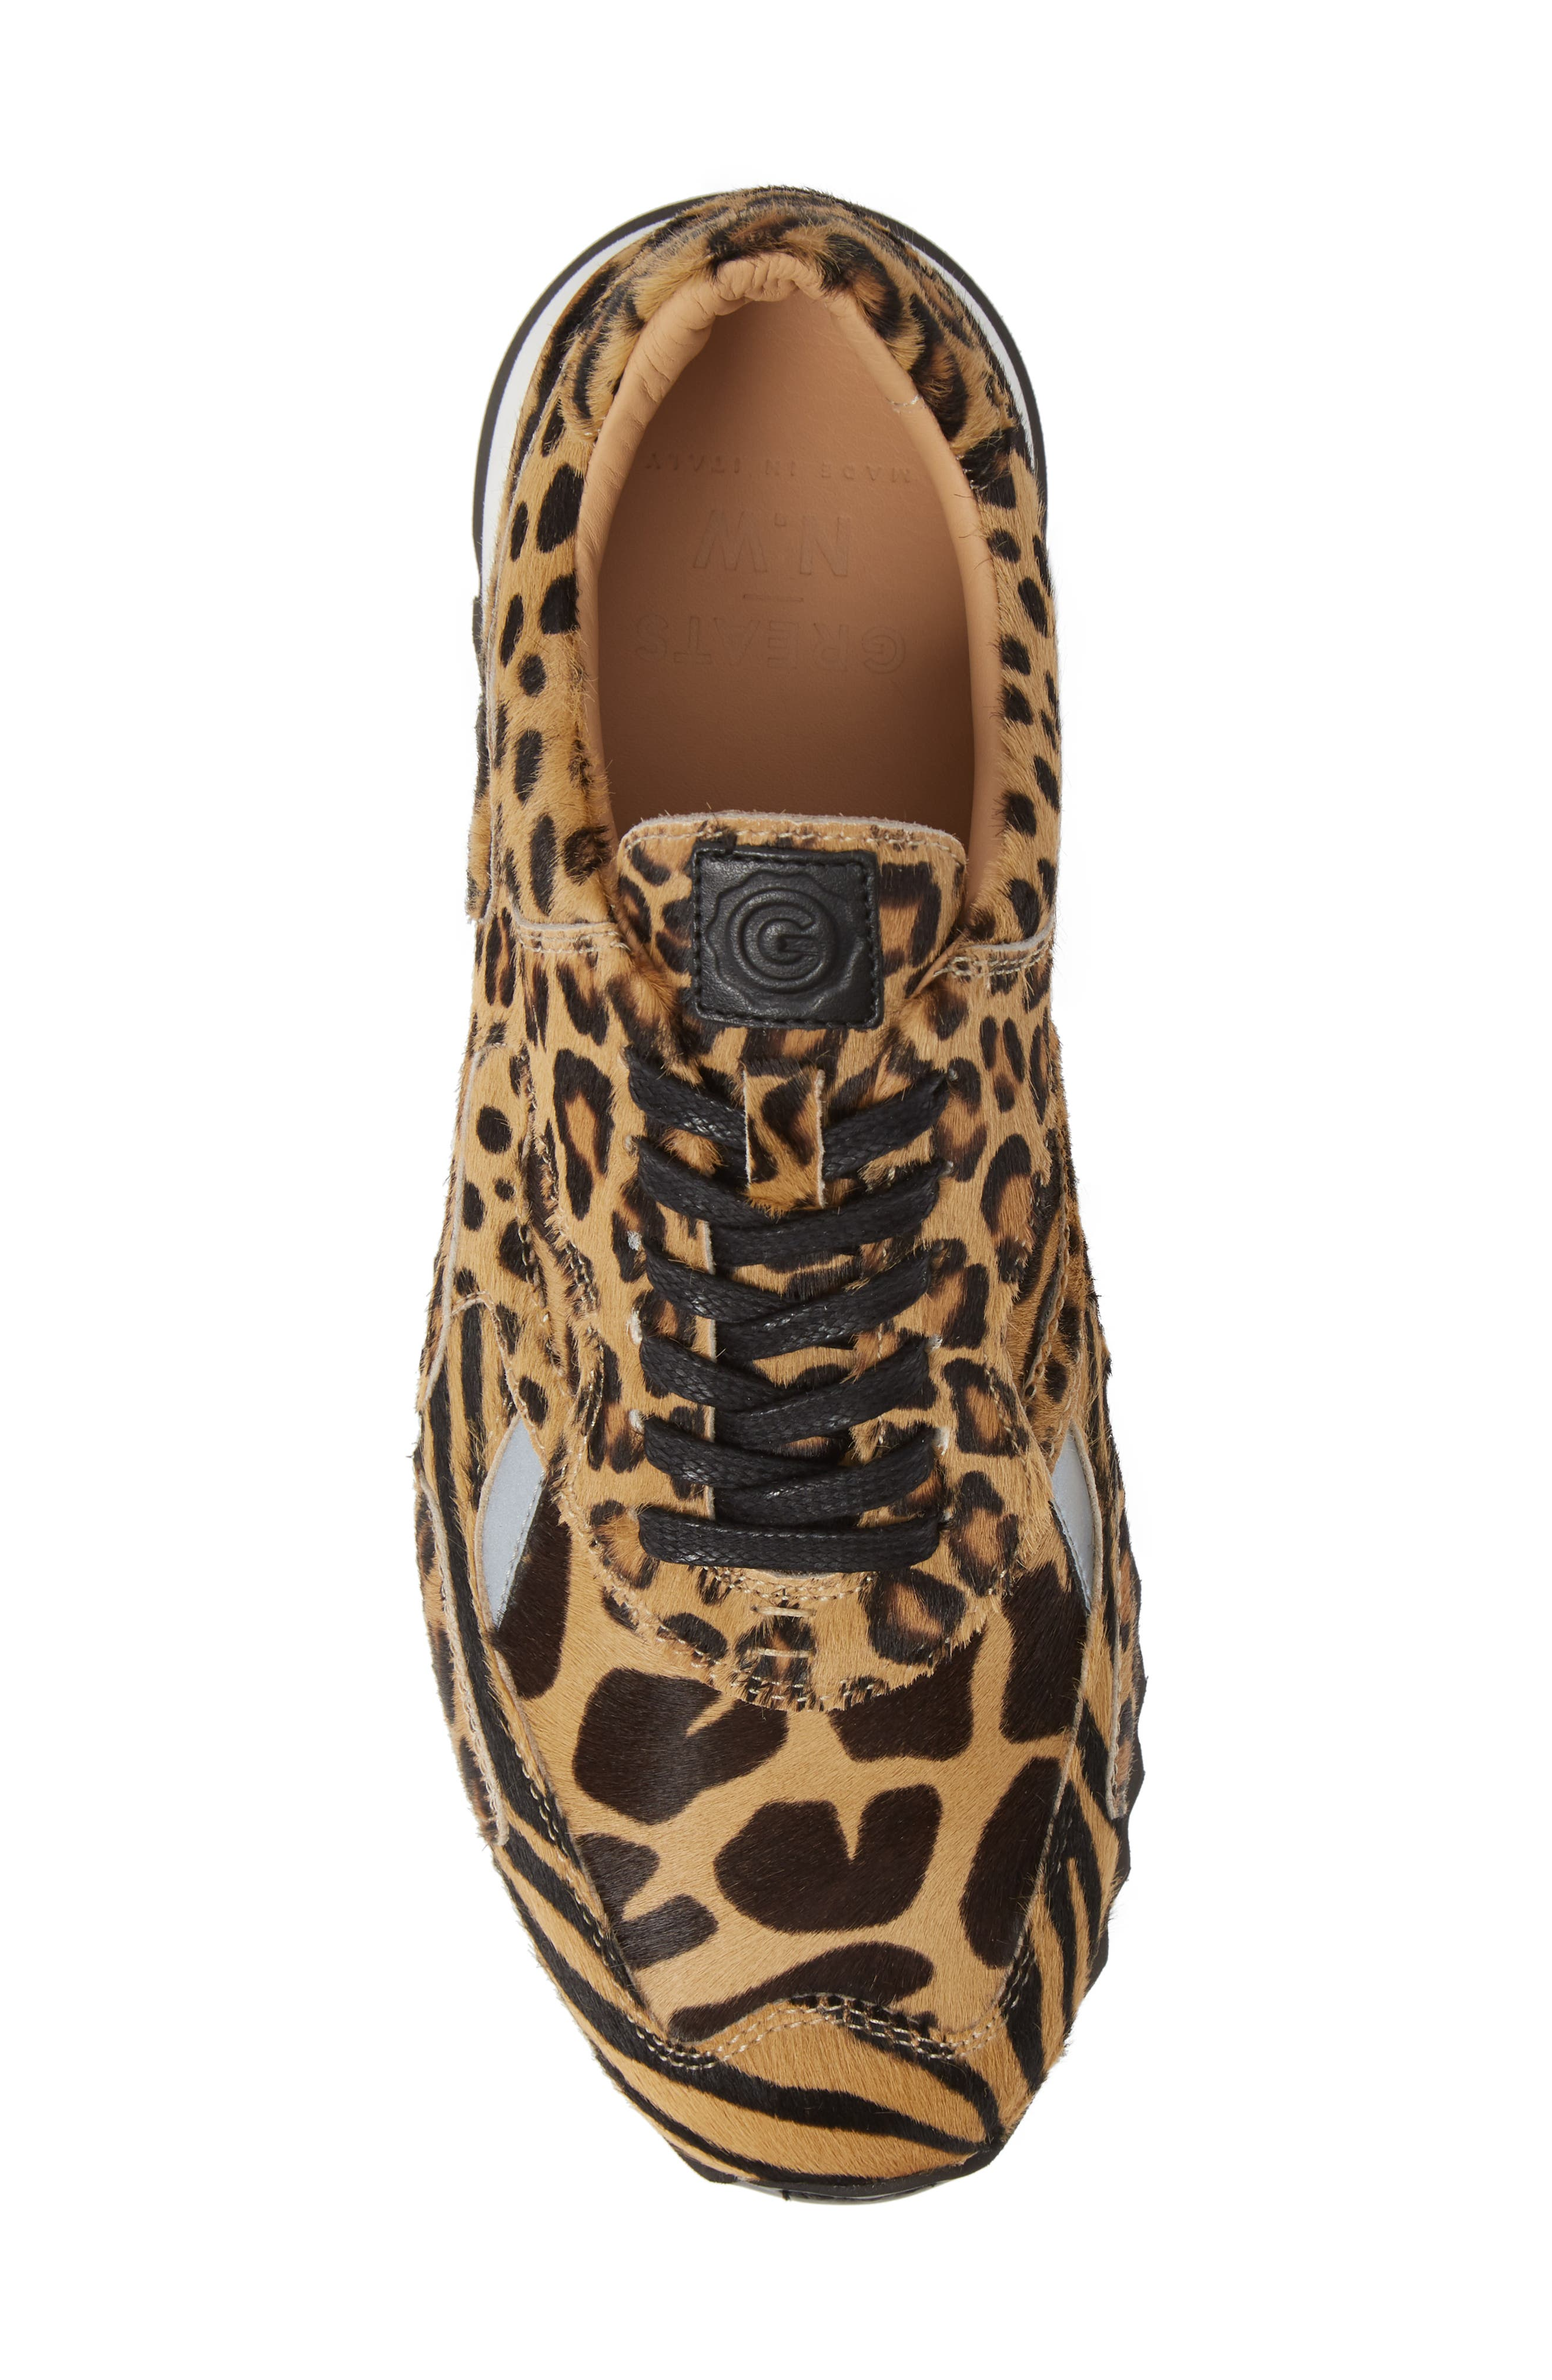 Nick Wooster x GREATS Pronto Genuine Calf Hair Sneaker,                             Alternate thumbnail 5, color,                             209